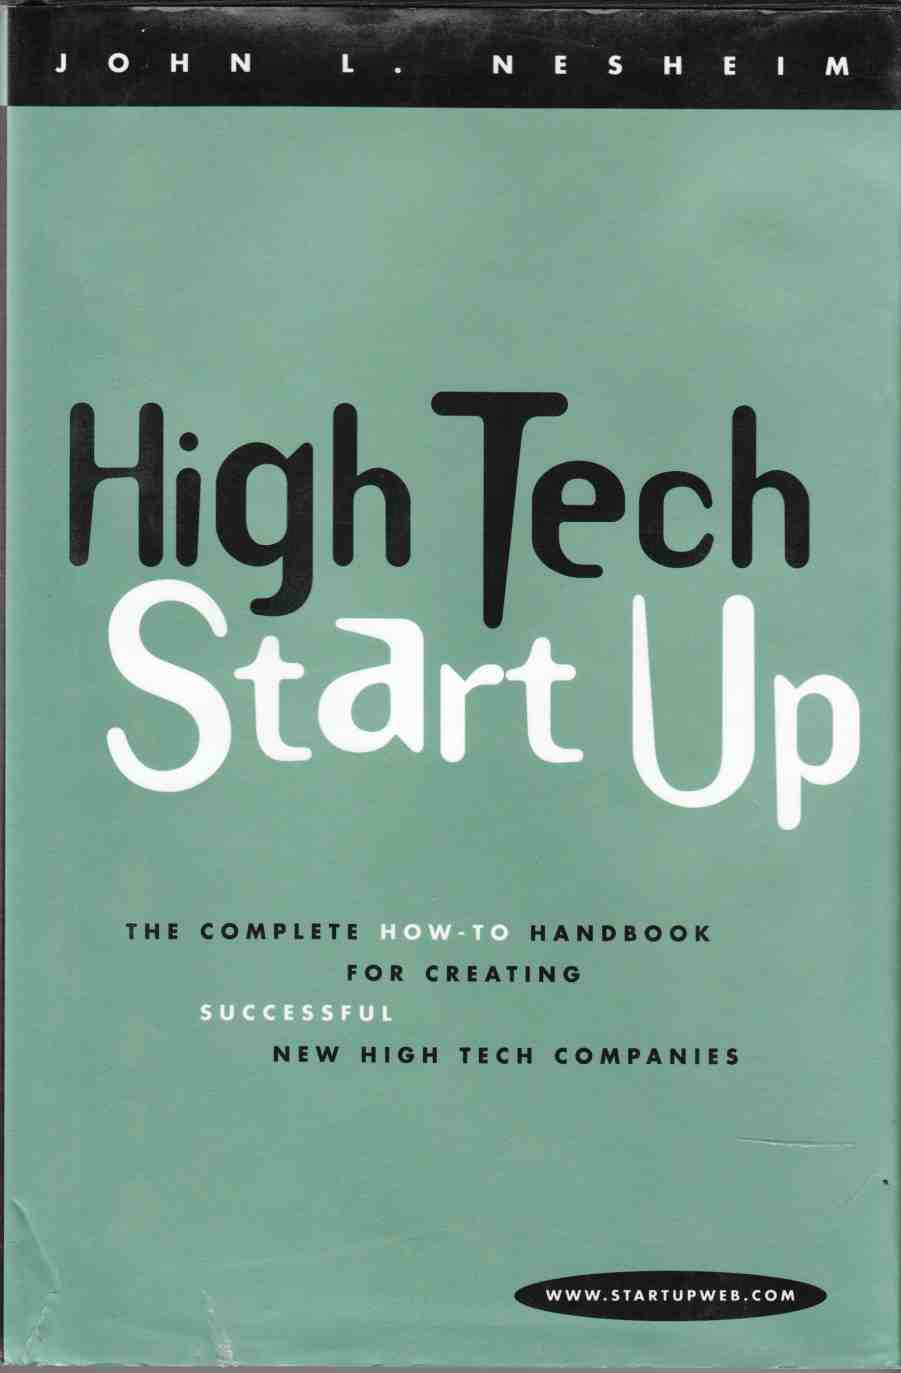 Image for High Tech Start Up The Complete How-To Handbook for Creating Successful High Tech Companies